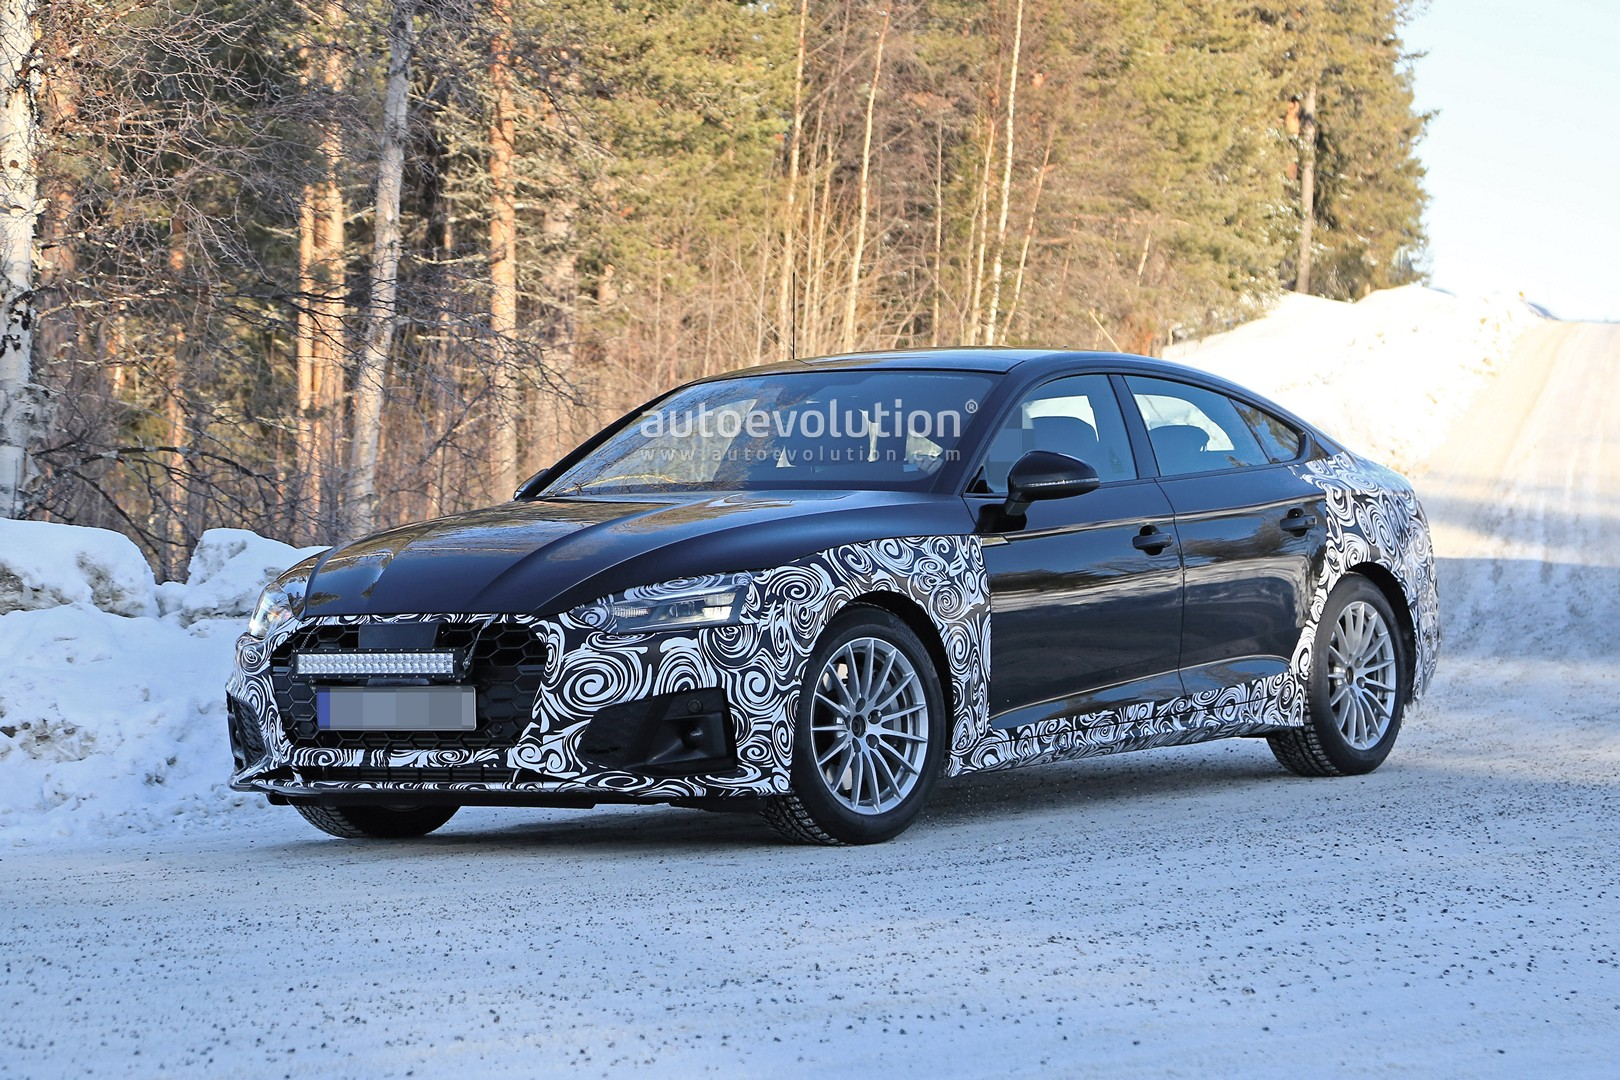 2020 Audi A5 Sportback Spied With New Lights Is Going Mild Hybrid Autoevolution